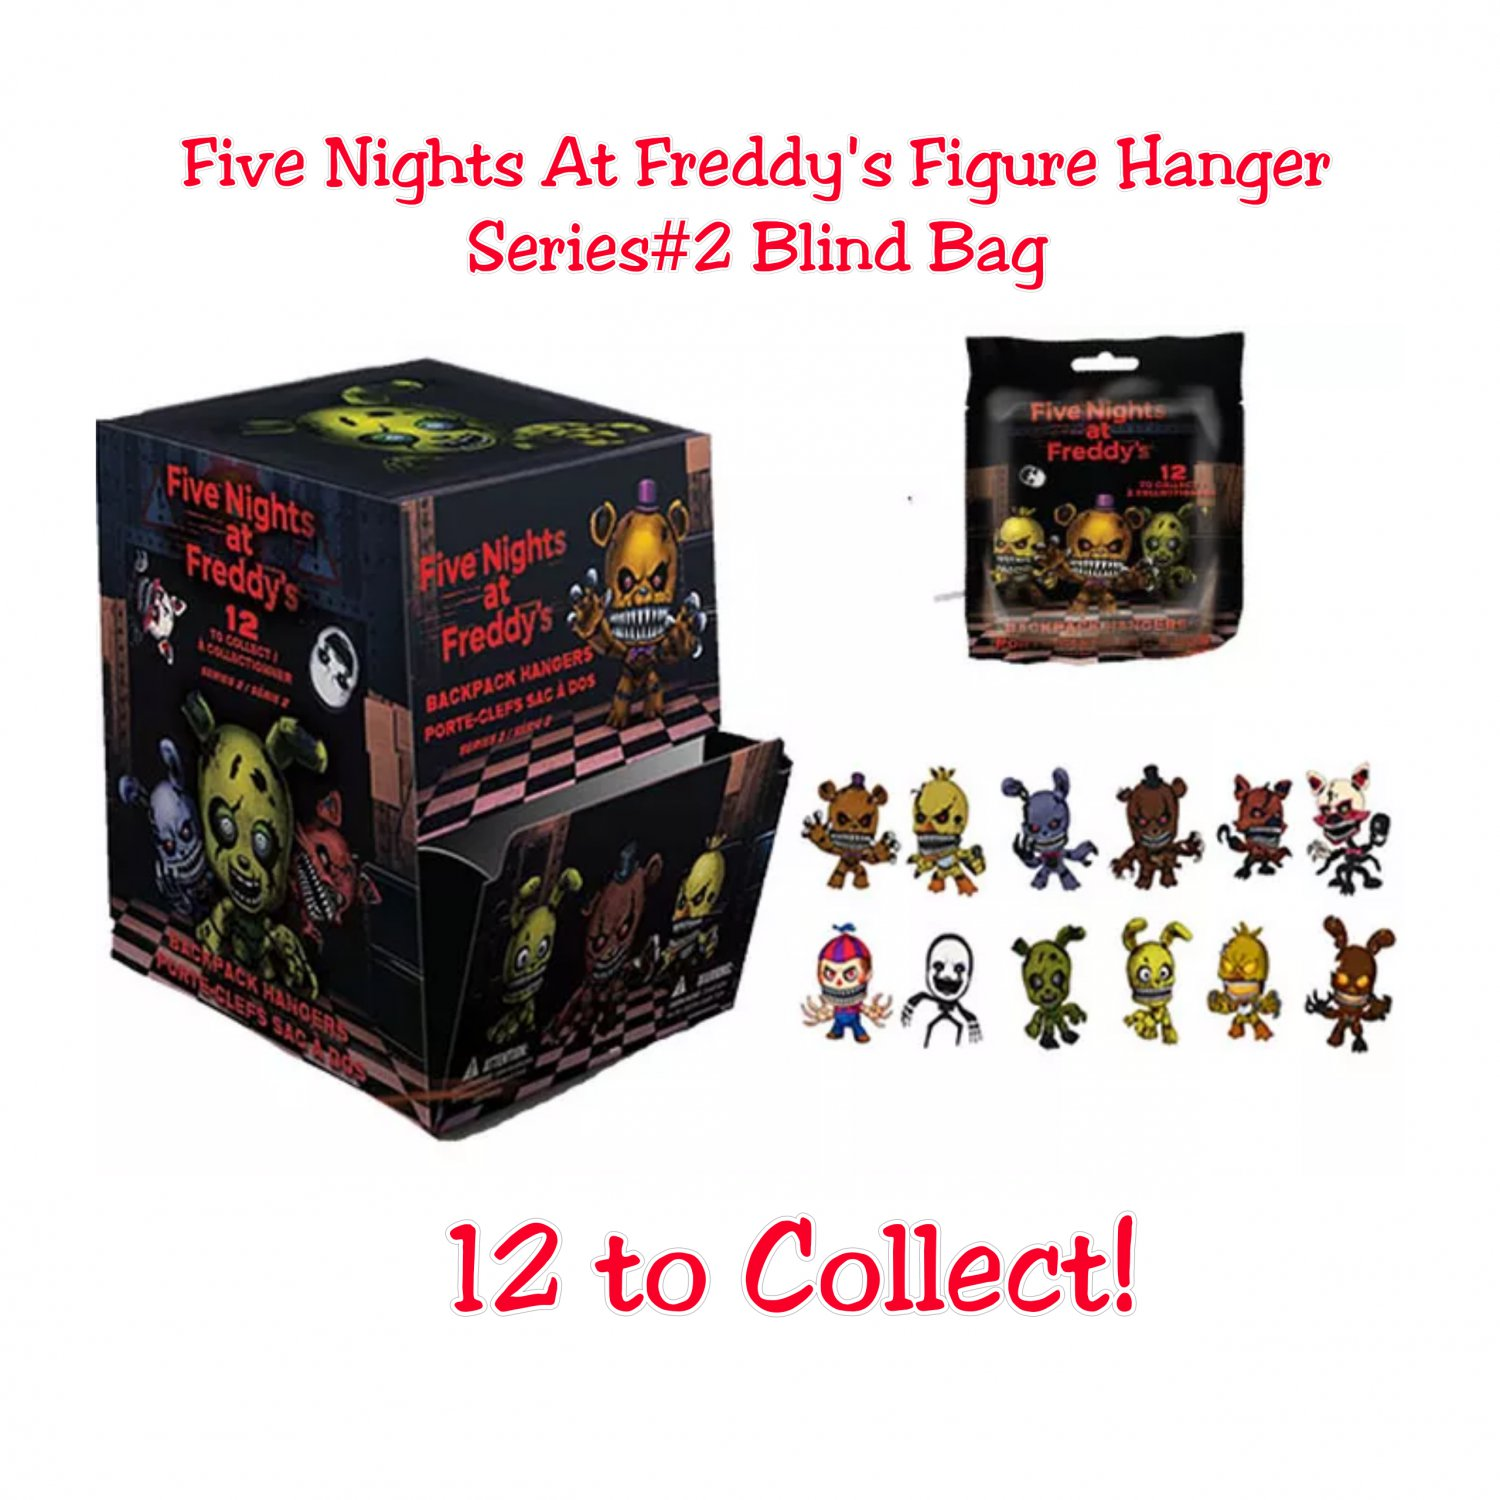 Fnaf Five Nights At Freddy S Collector Figure Hangers